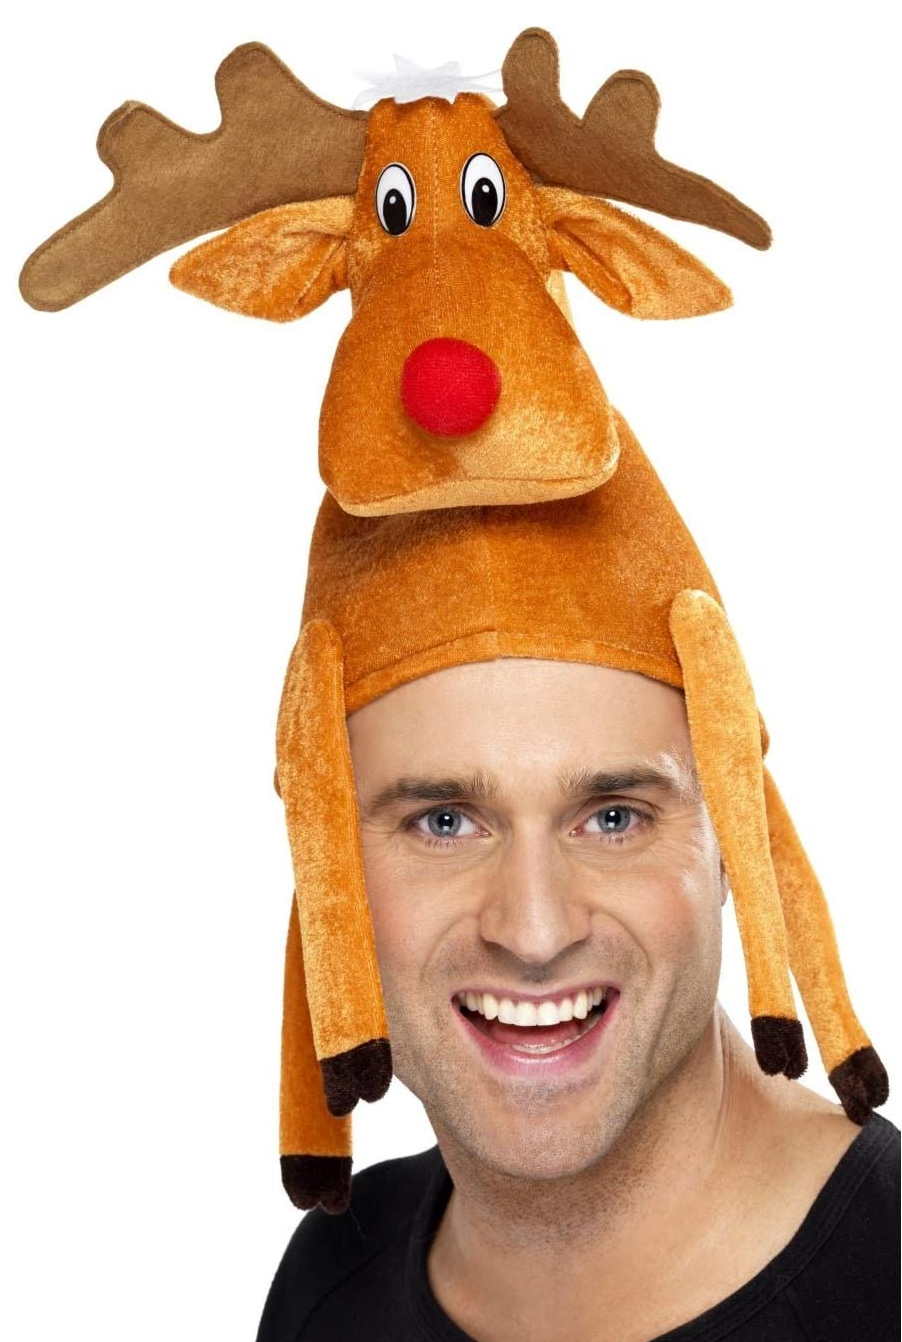 The Best Christmas Hats 2020. Reindeer Hats 2020. Funny Christmas 2020. Christmas Party Outfit ideas 2020. Christmas Hats for the Office Party 2020. Christmas Jumper Day 2020. Best Christmas outfits. Secret Santa Gifts 2020.